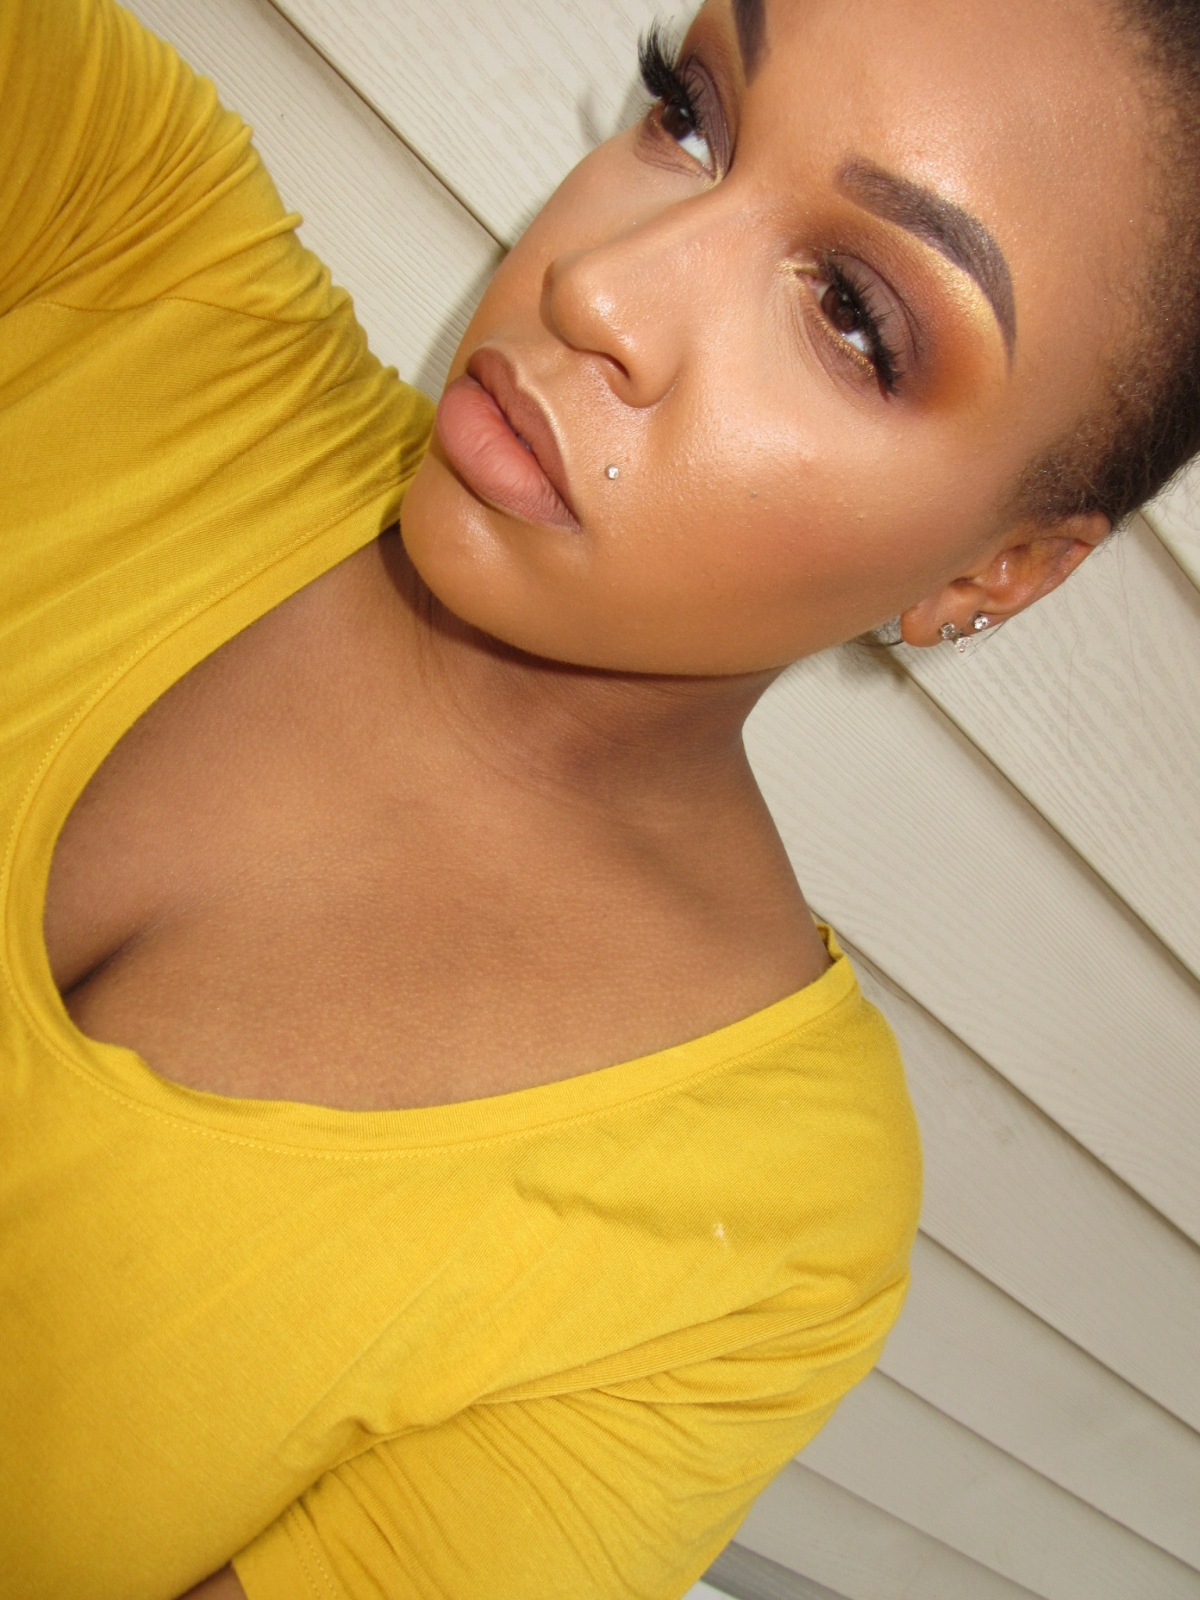 Chocolate Peanut Butter featuring Morphe x JaclynHill